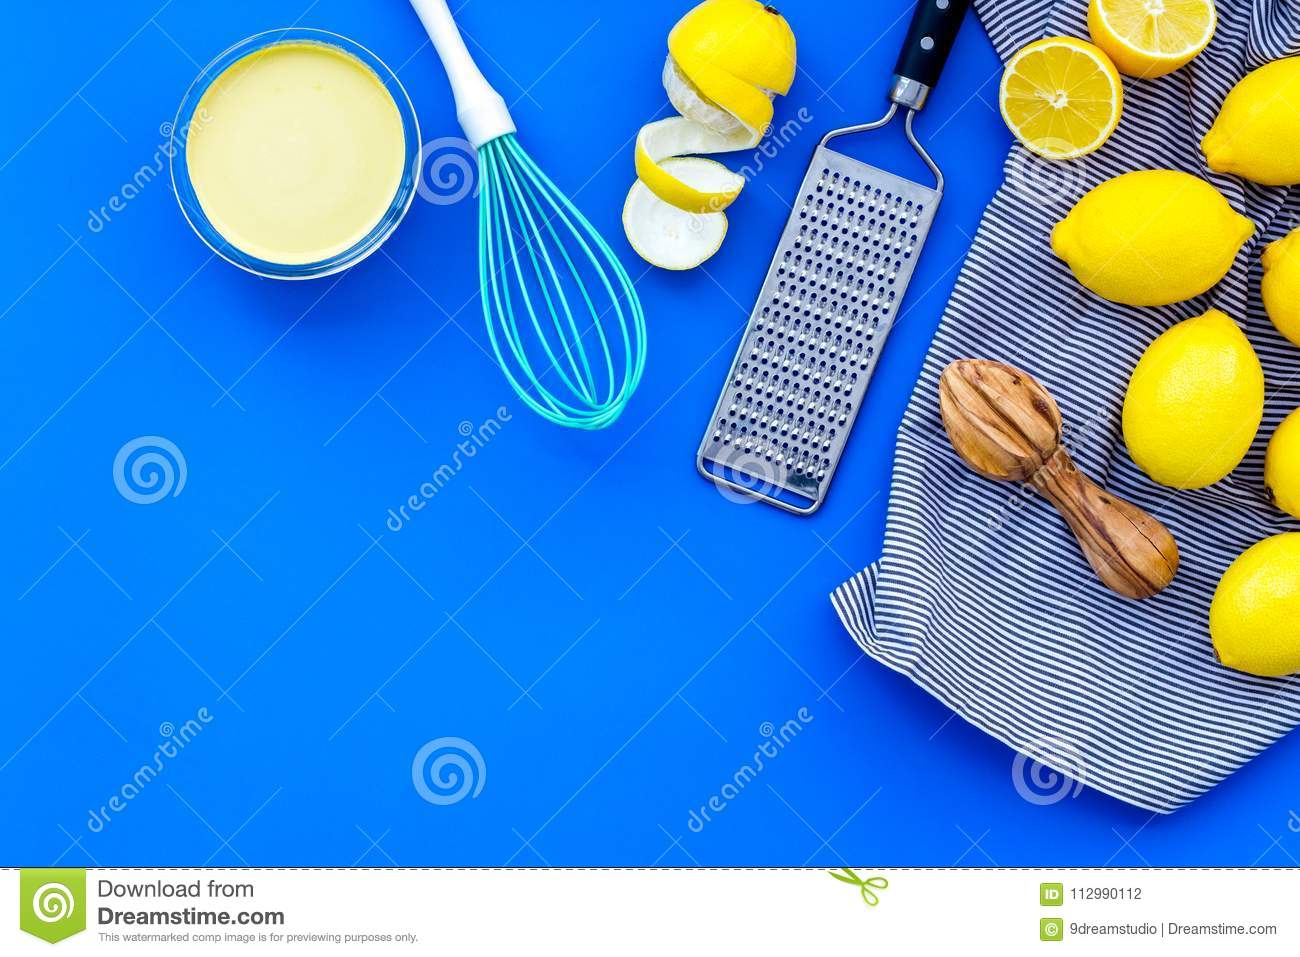 Cook lemon curd. Sweet cream in bowl, fruits, kitchen utensils on blue background top view copy space